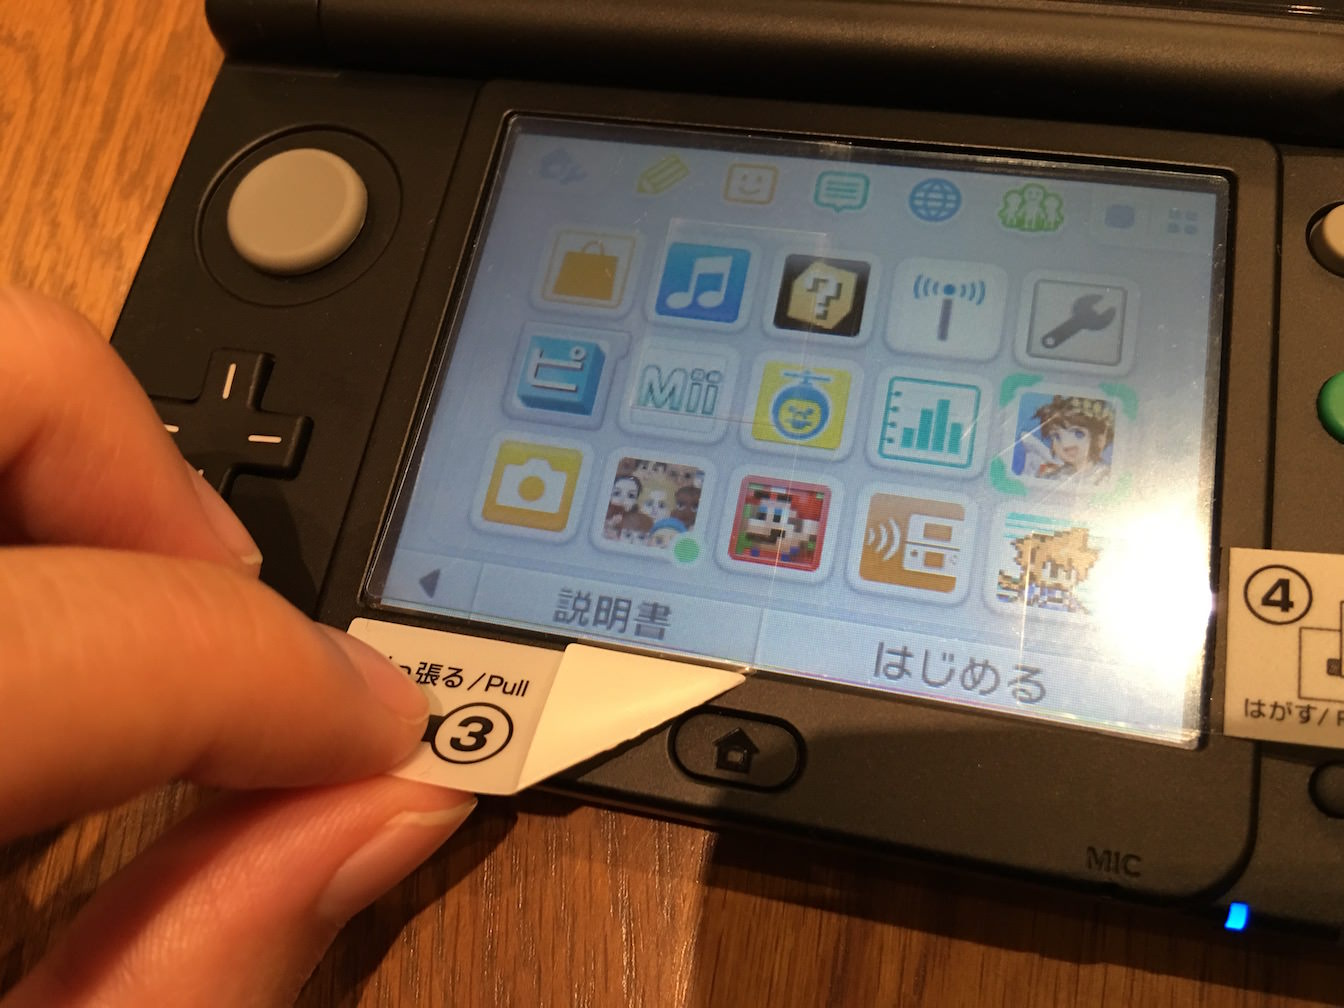 Review of zero pita filter for new nintendo 3ds 10